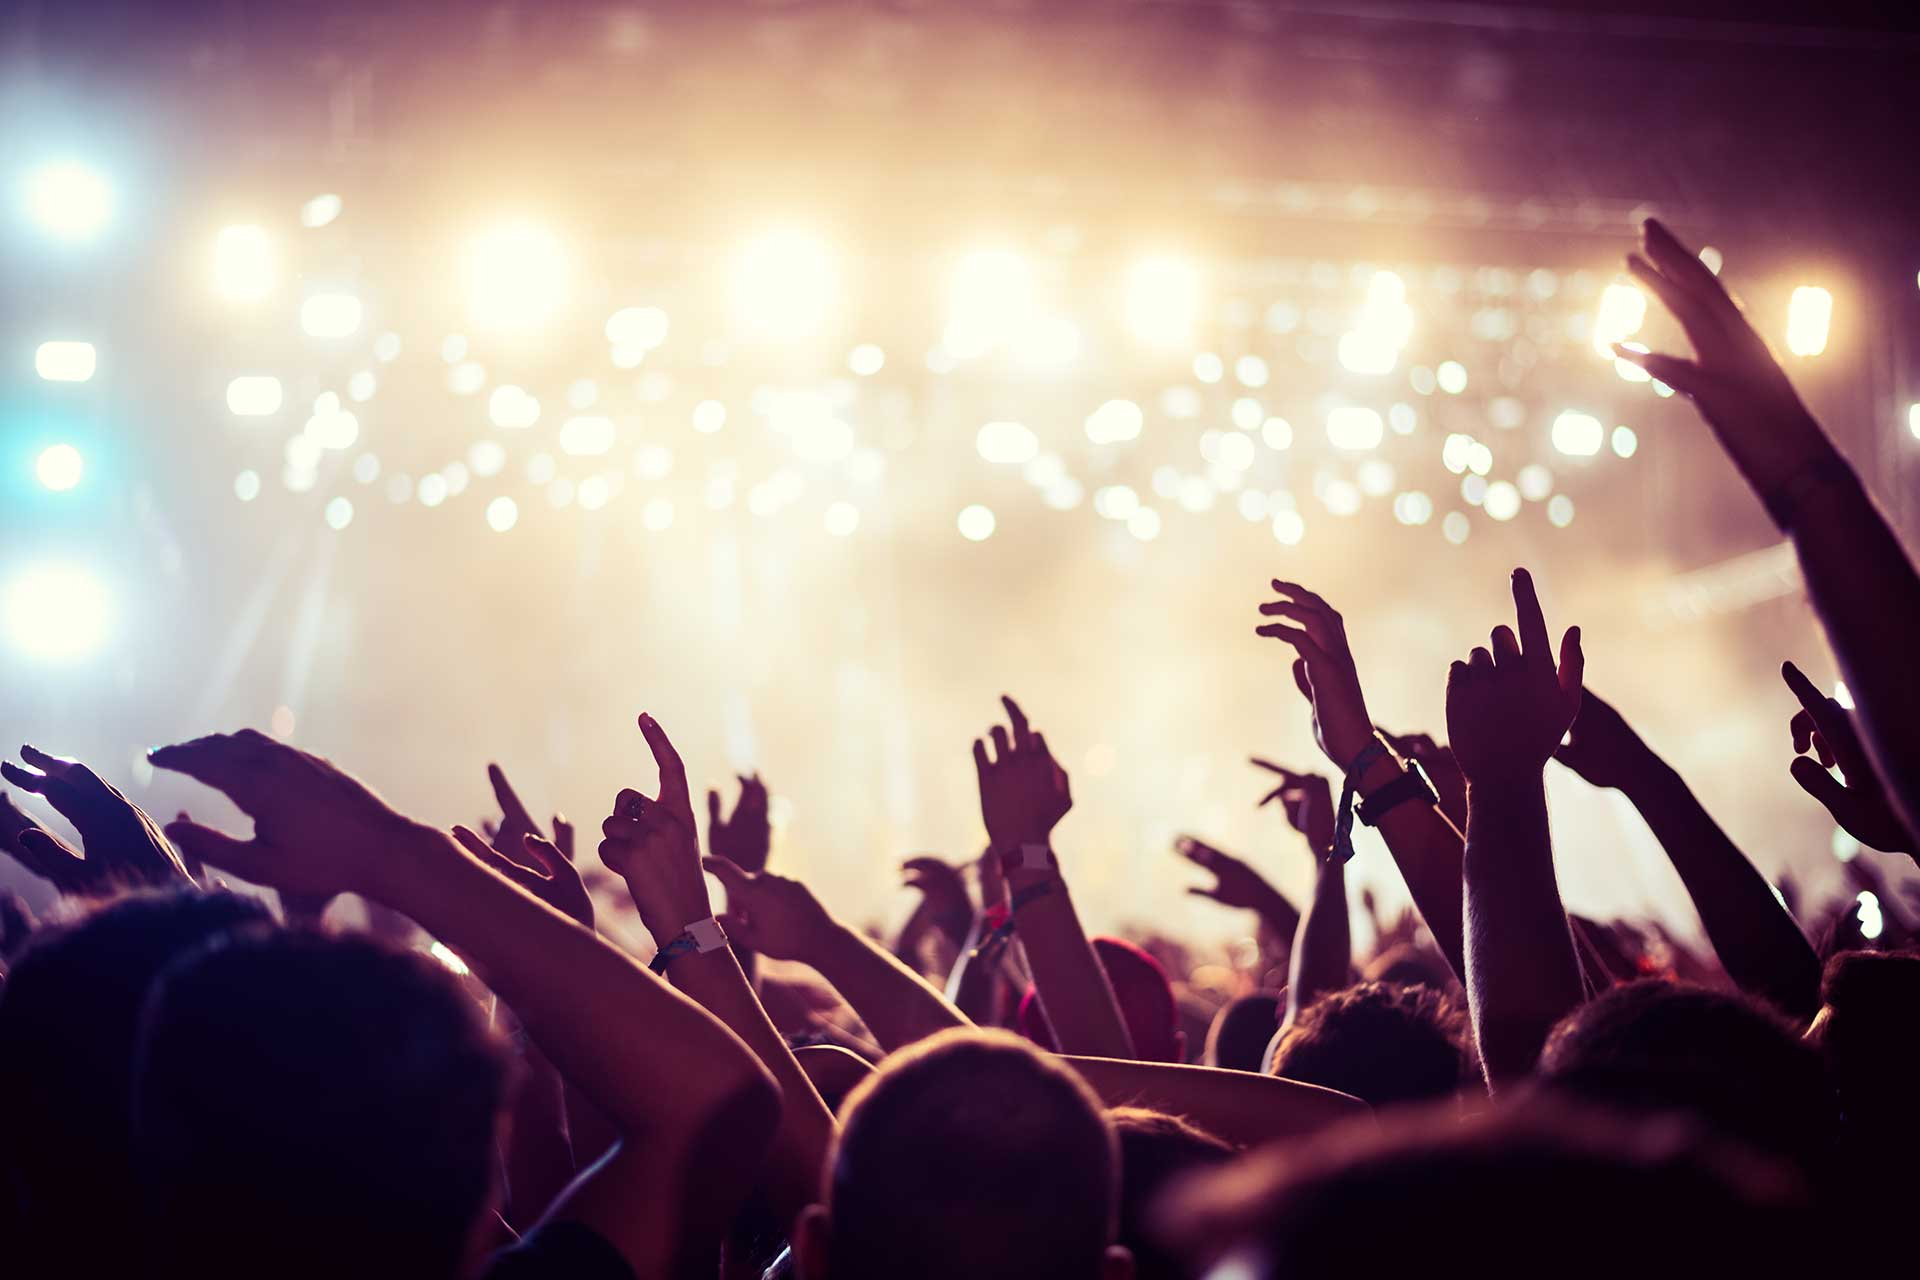 People at a concert waving their hands in the air